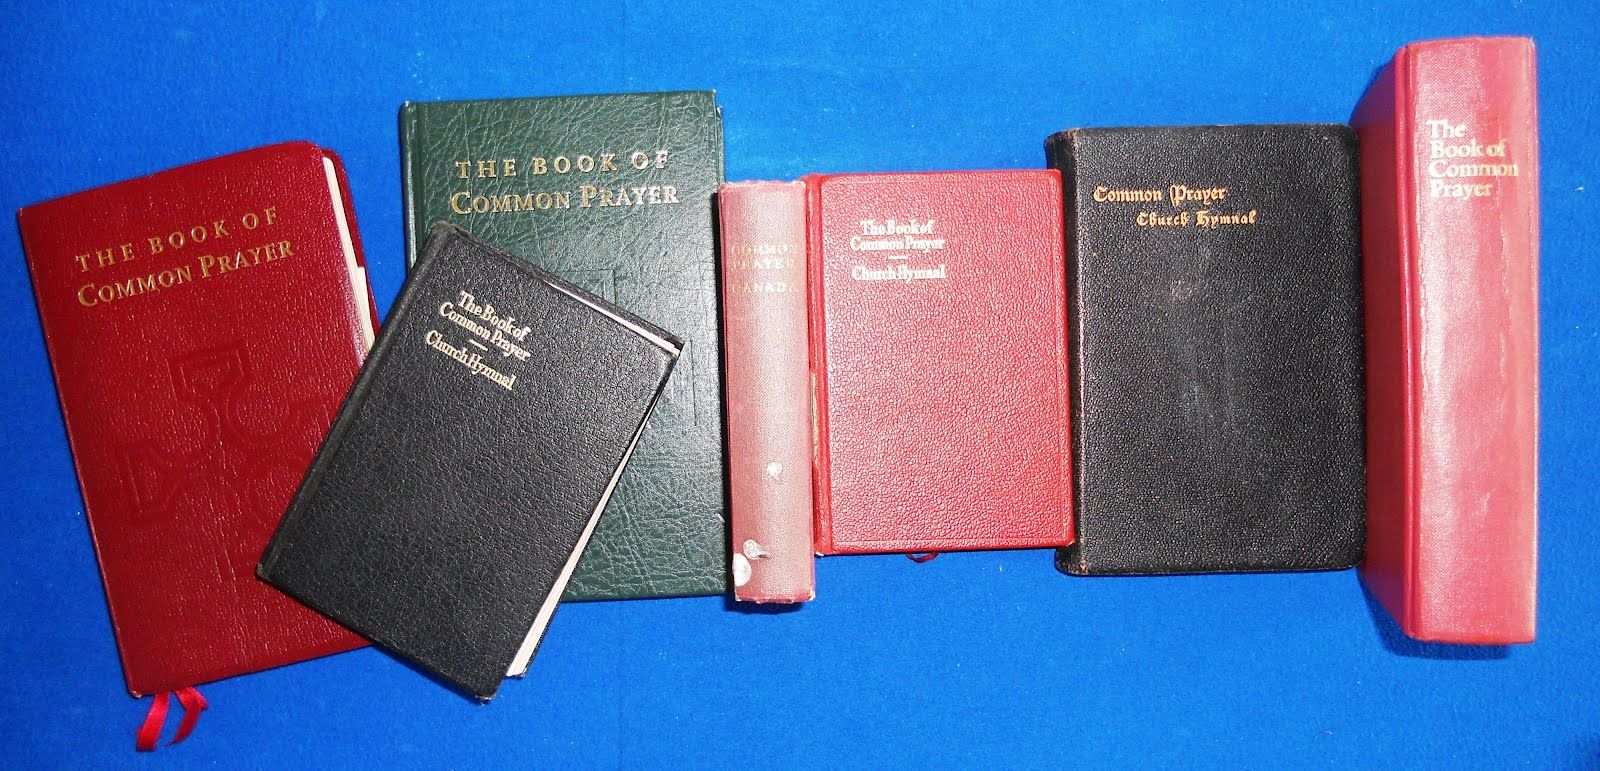 Book Of Common Prayer With Images Book Of Common Prayer